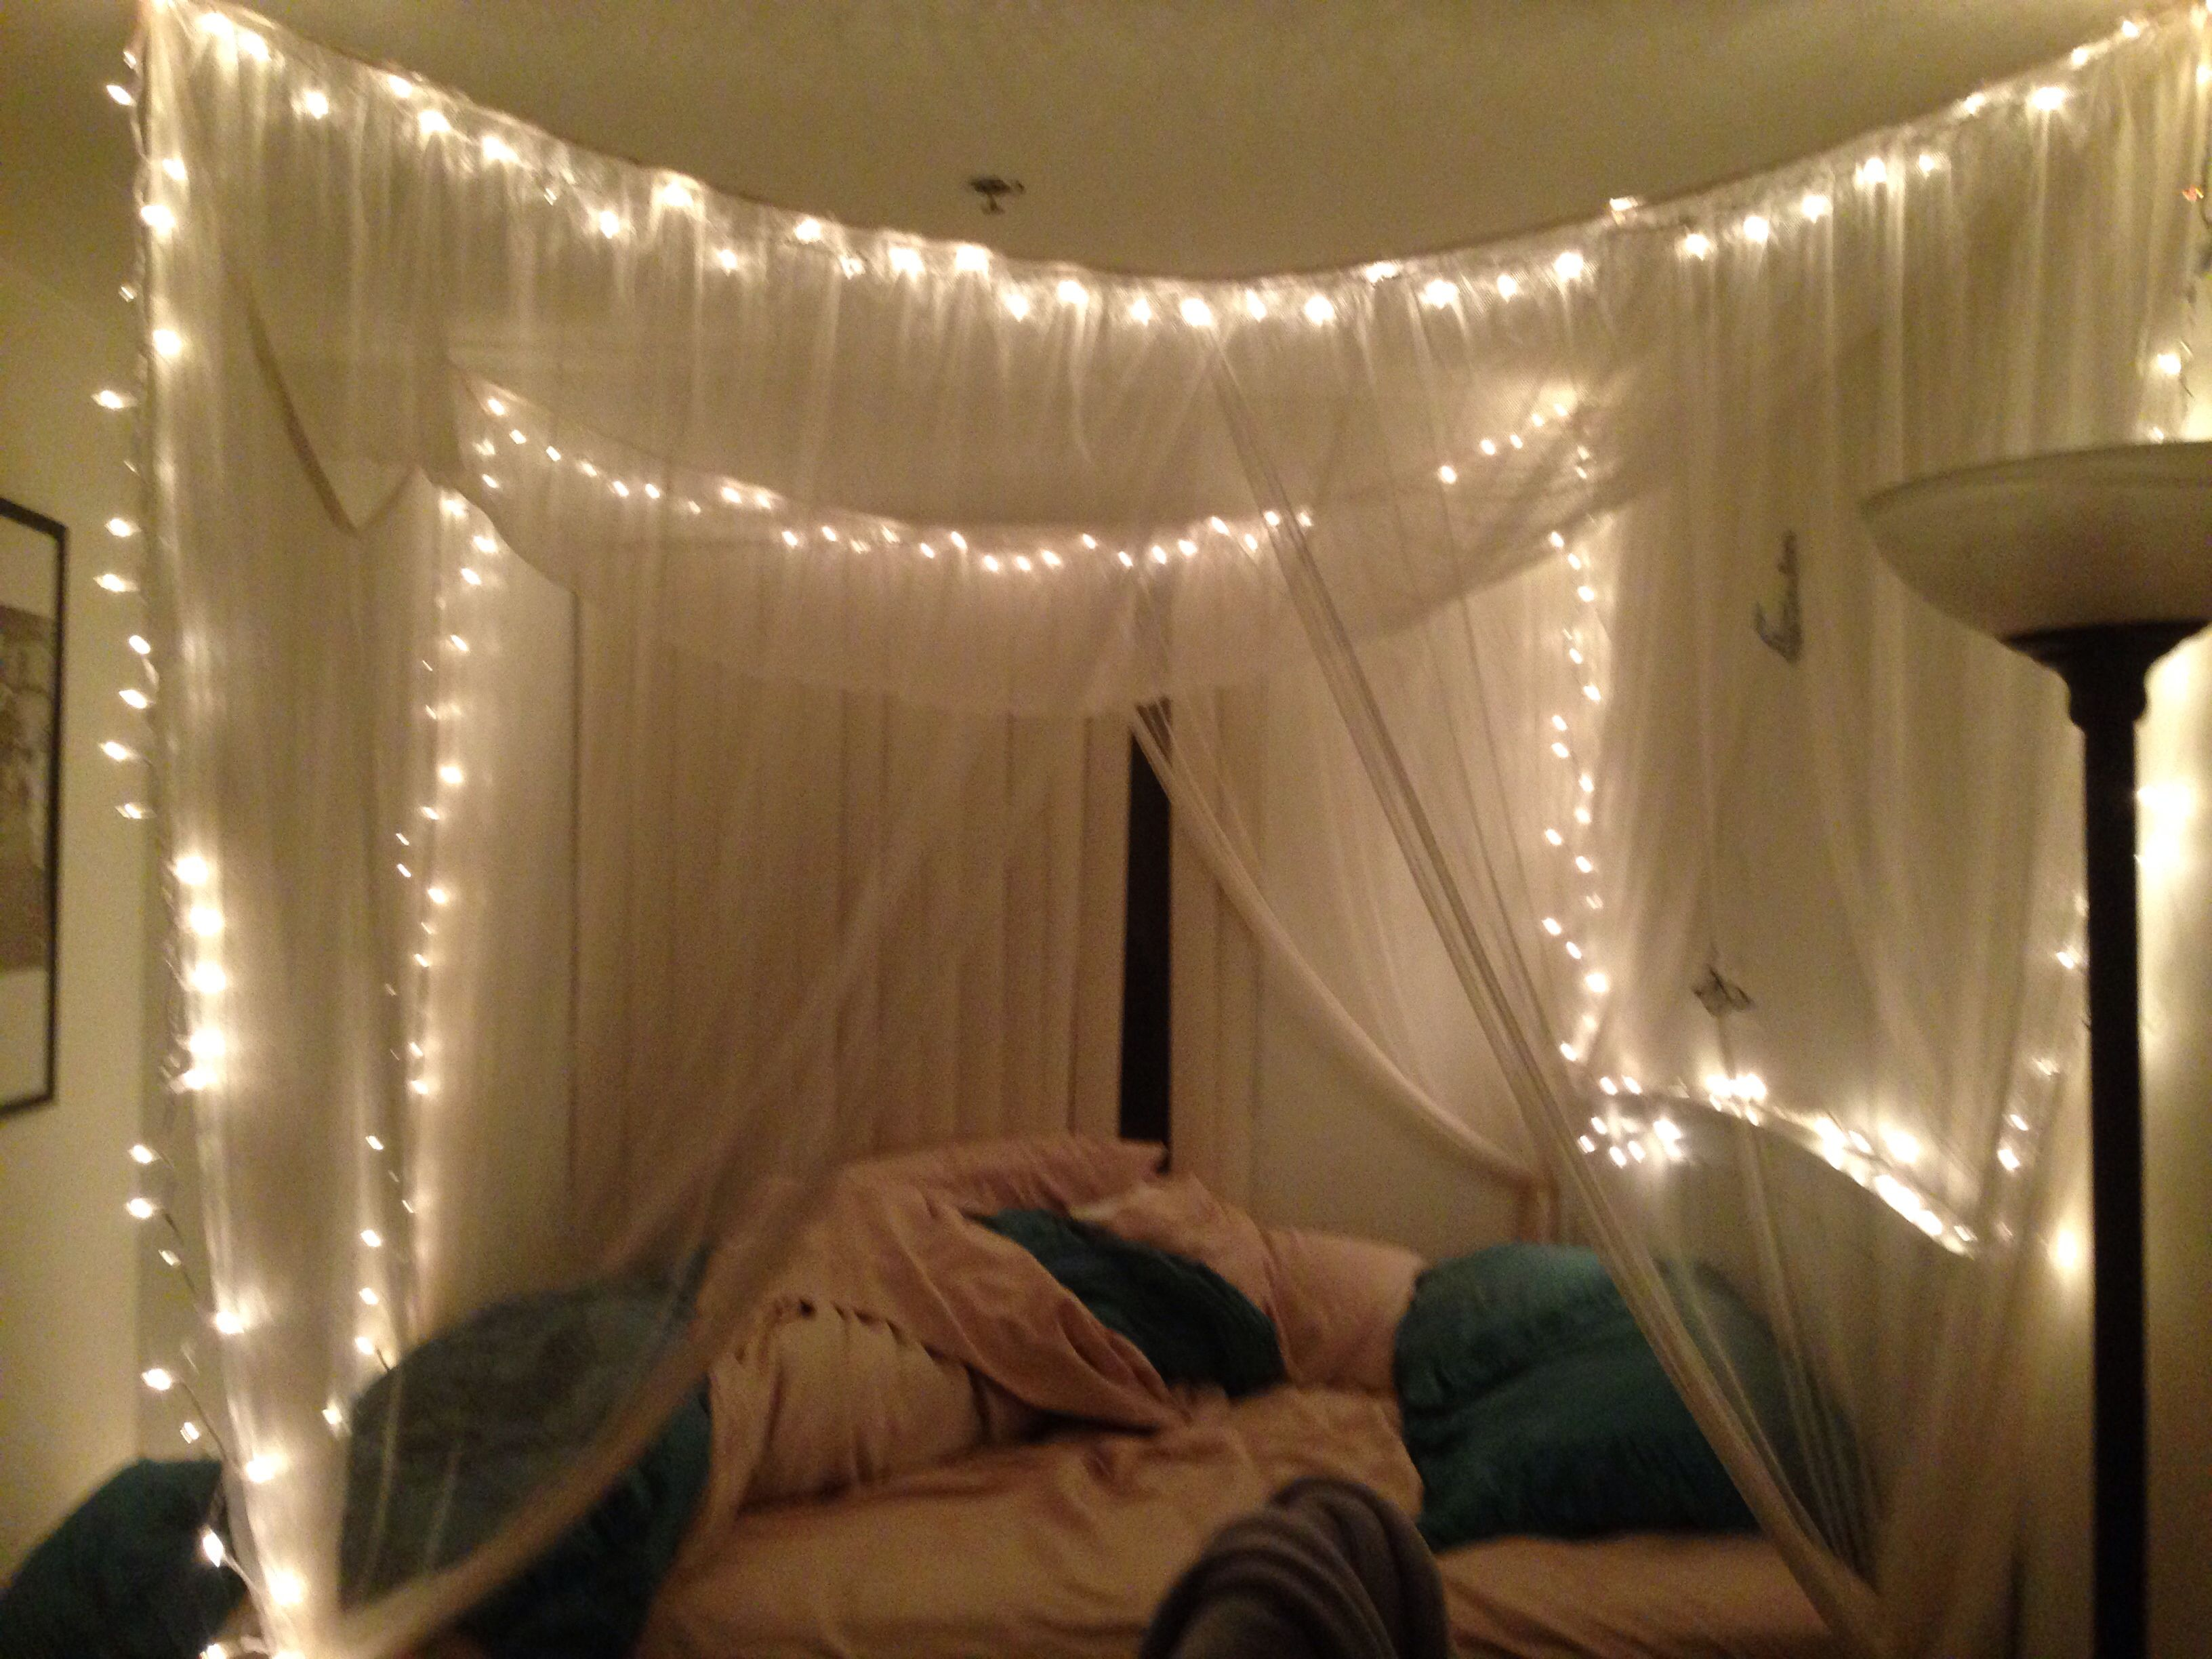 Canopy bed with lights - Twinkle Lights In Canopy Bed